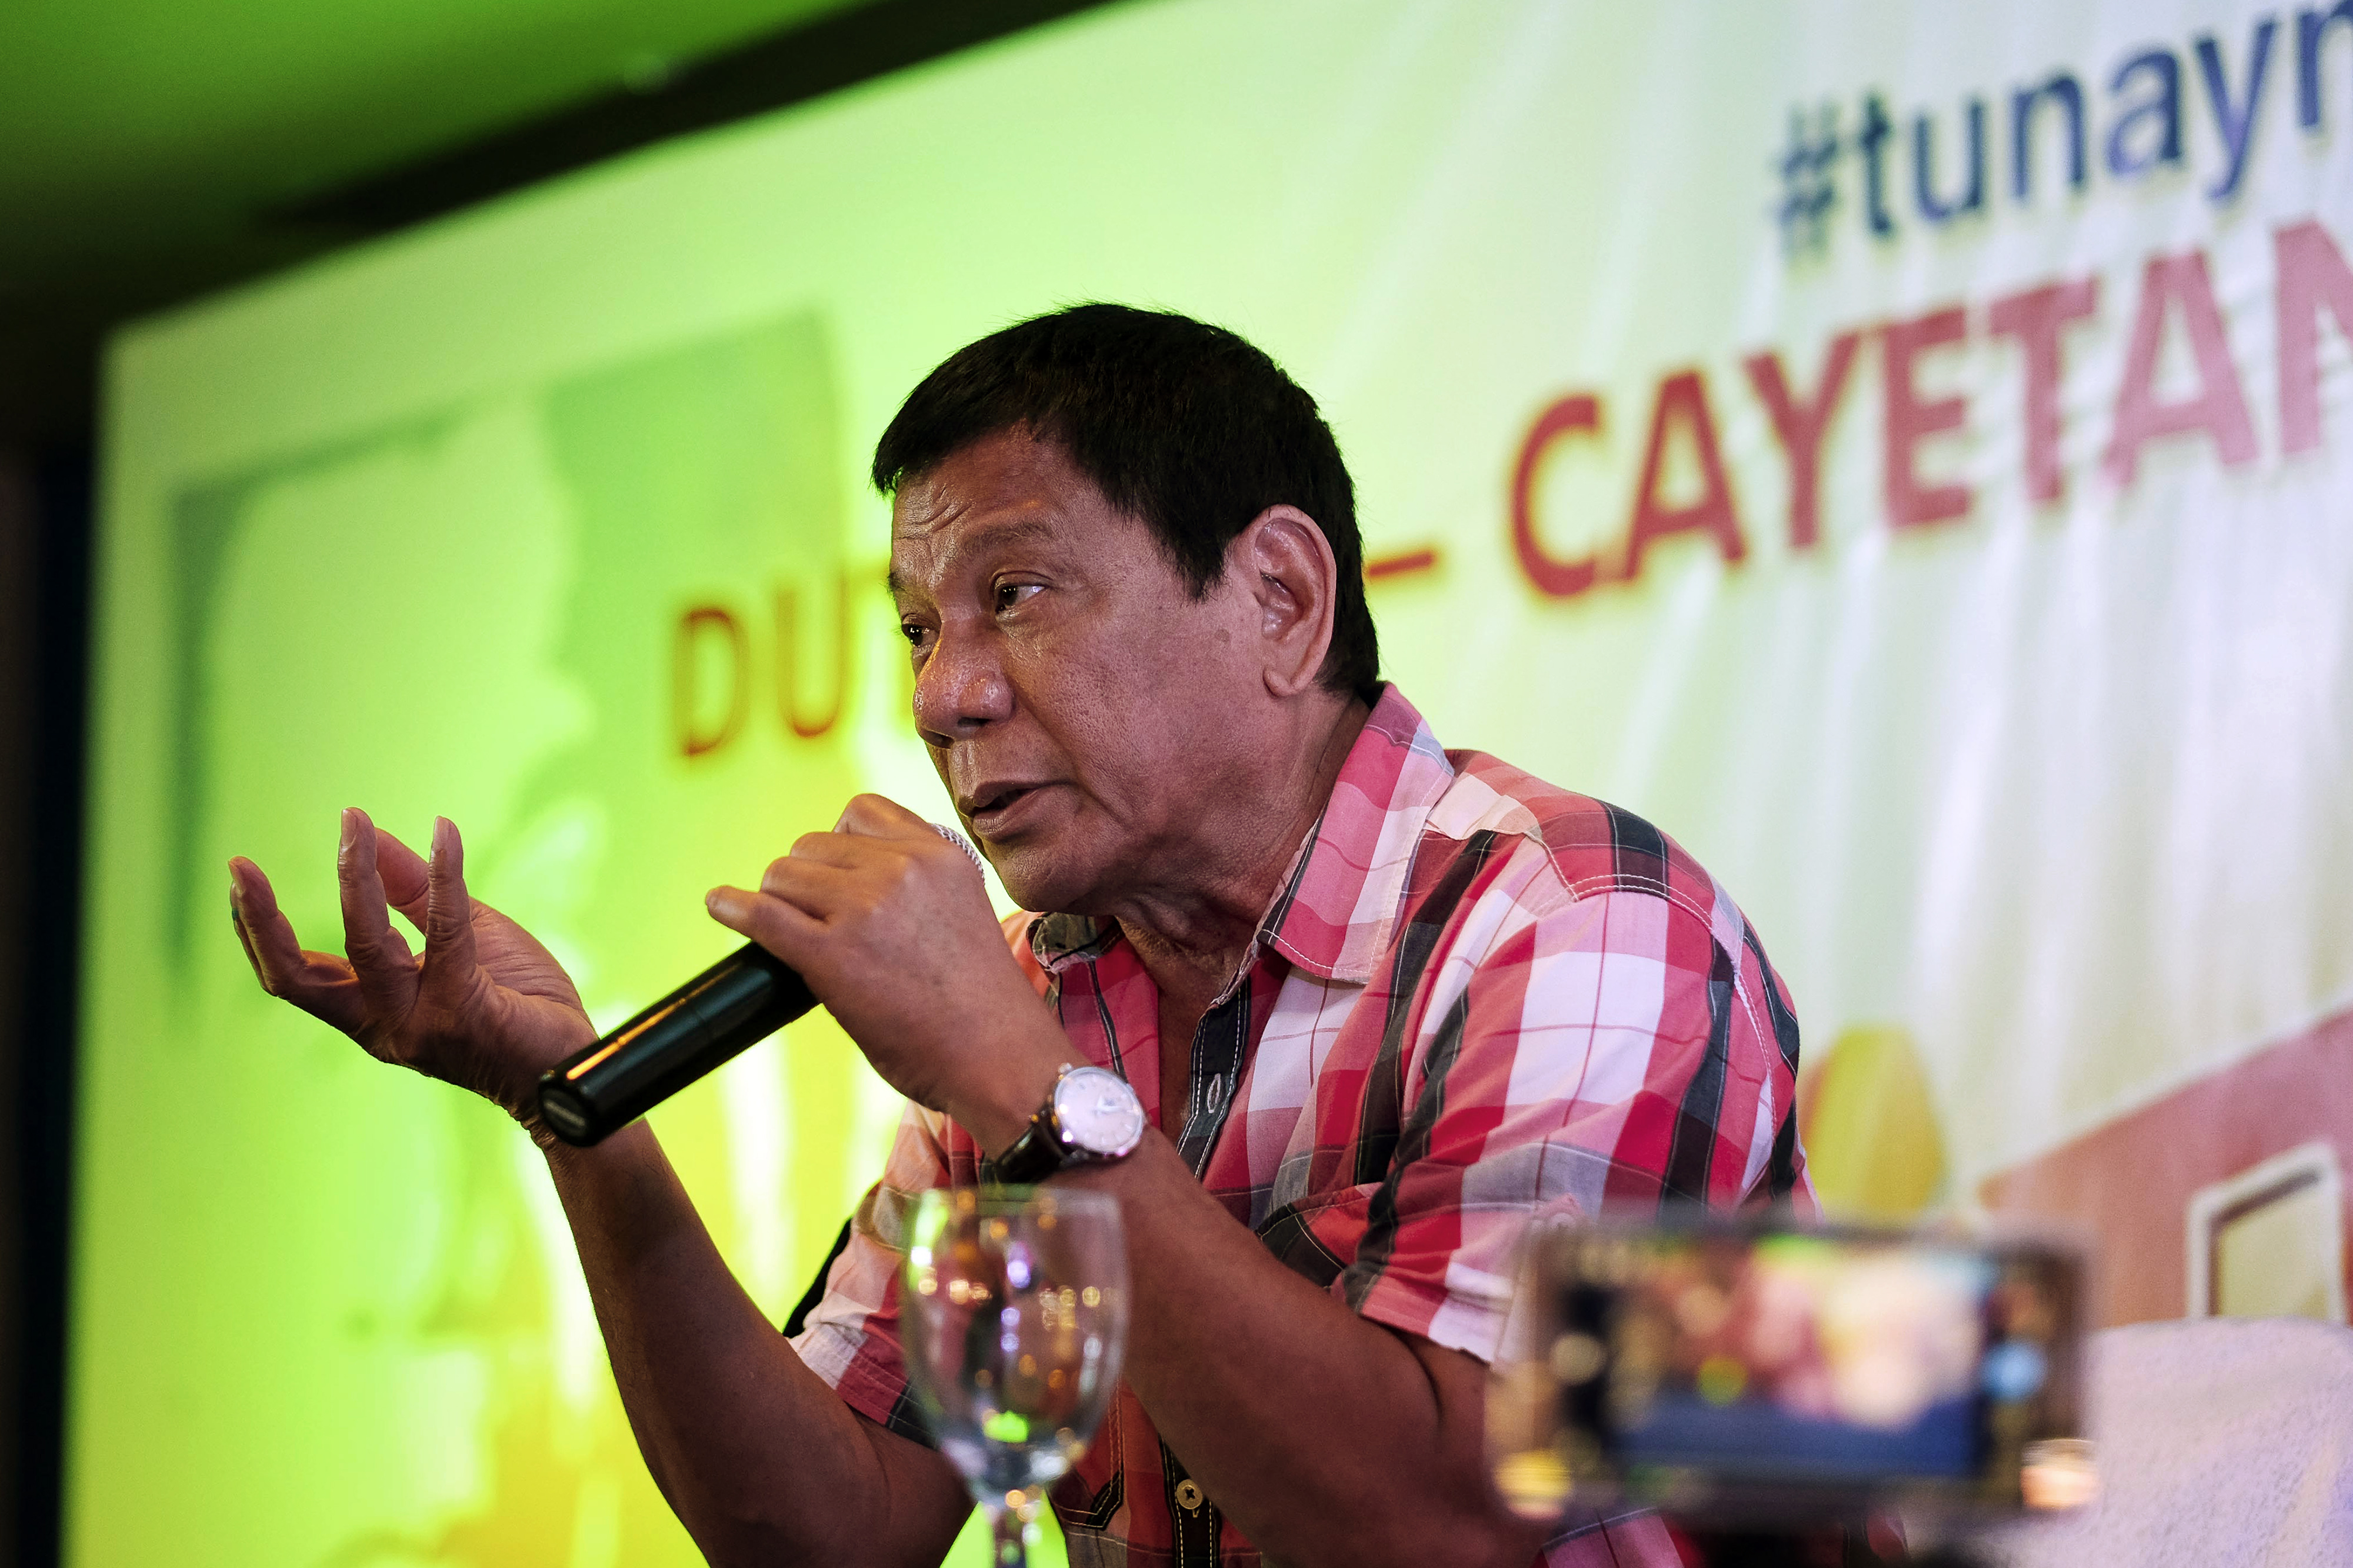 Davao Mayor Rodrigo Duterte Votes As Filipinos Head To The Polls For Presidential Election